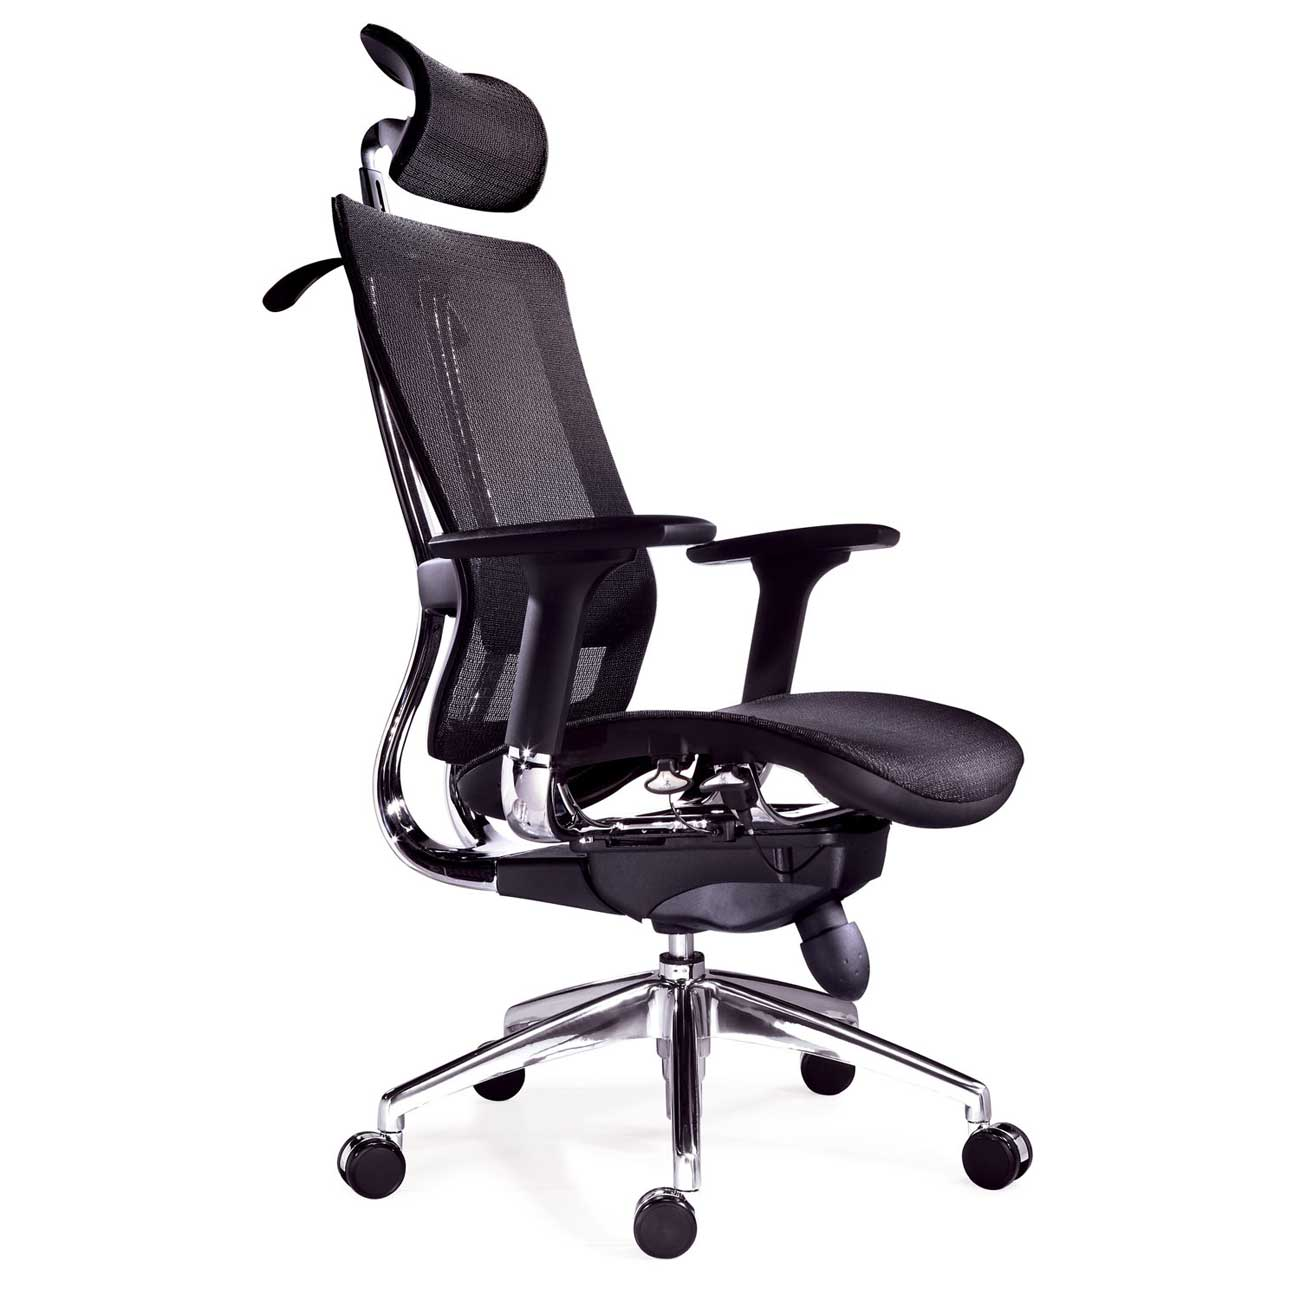 Herman Miller lower back pain office chairs